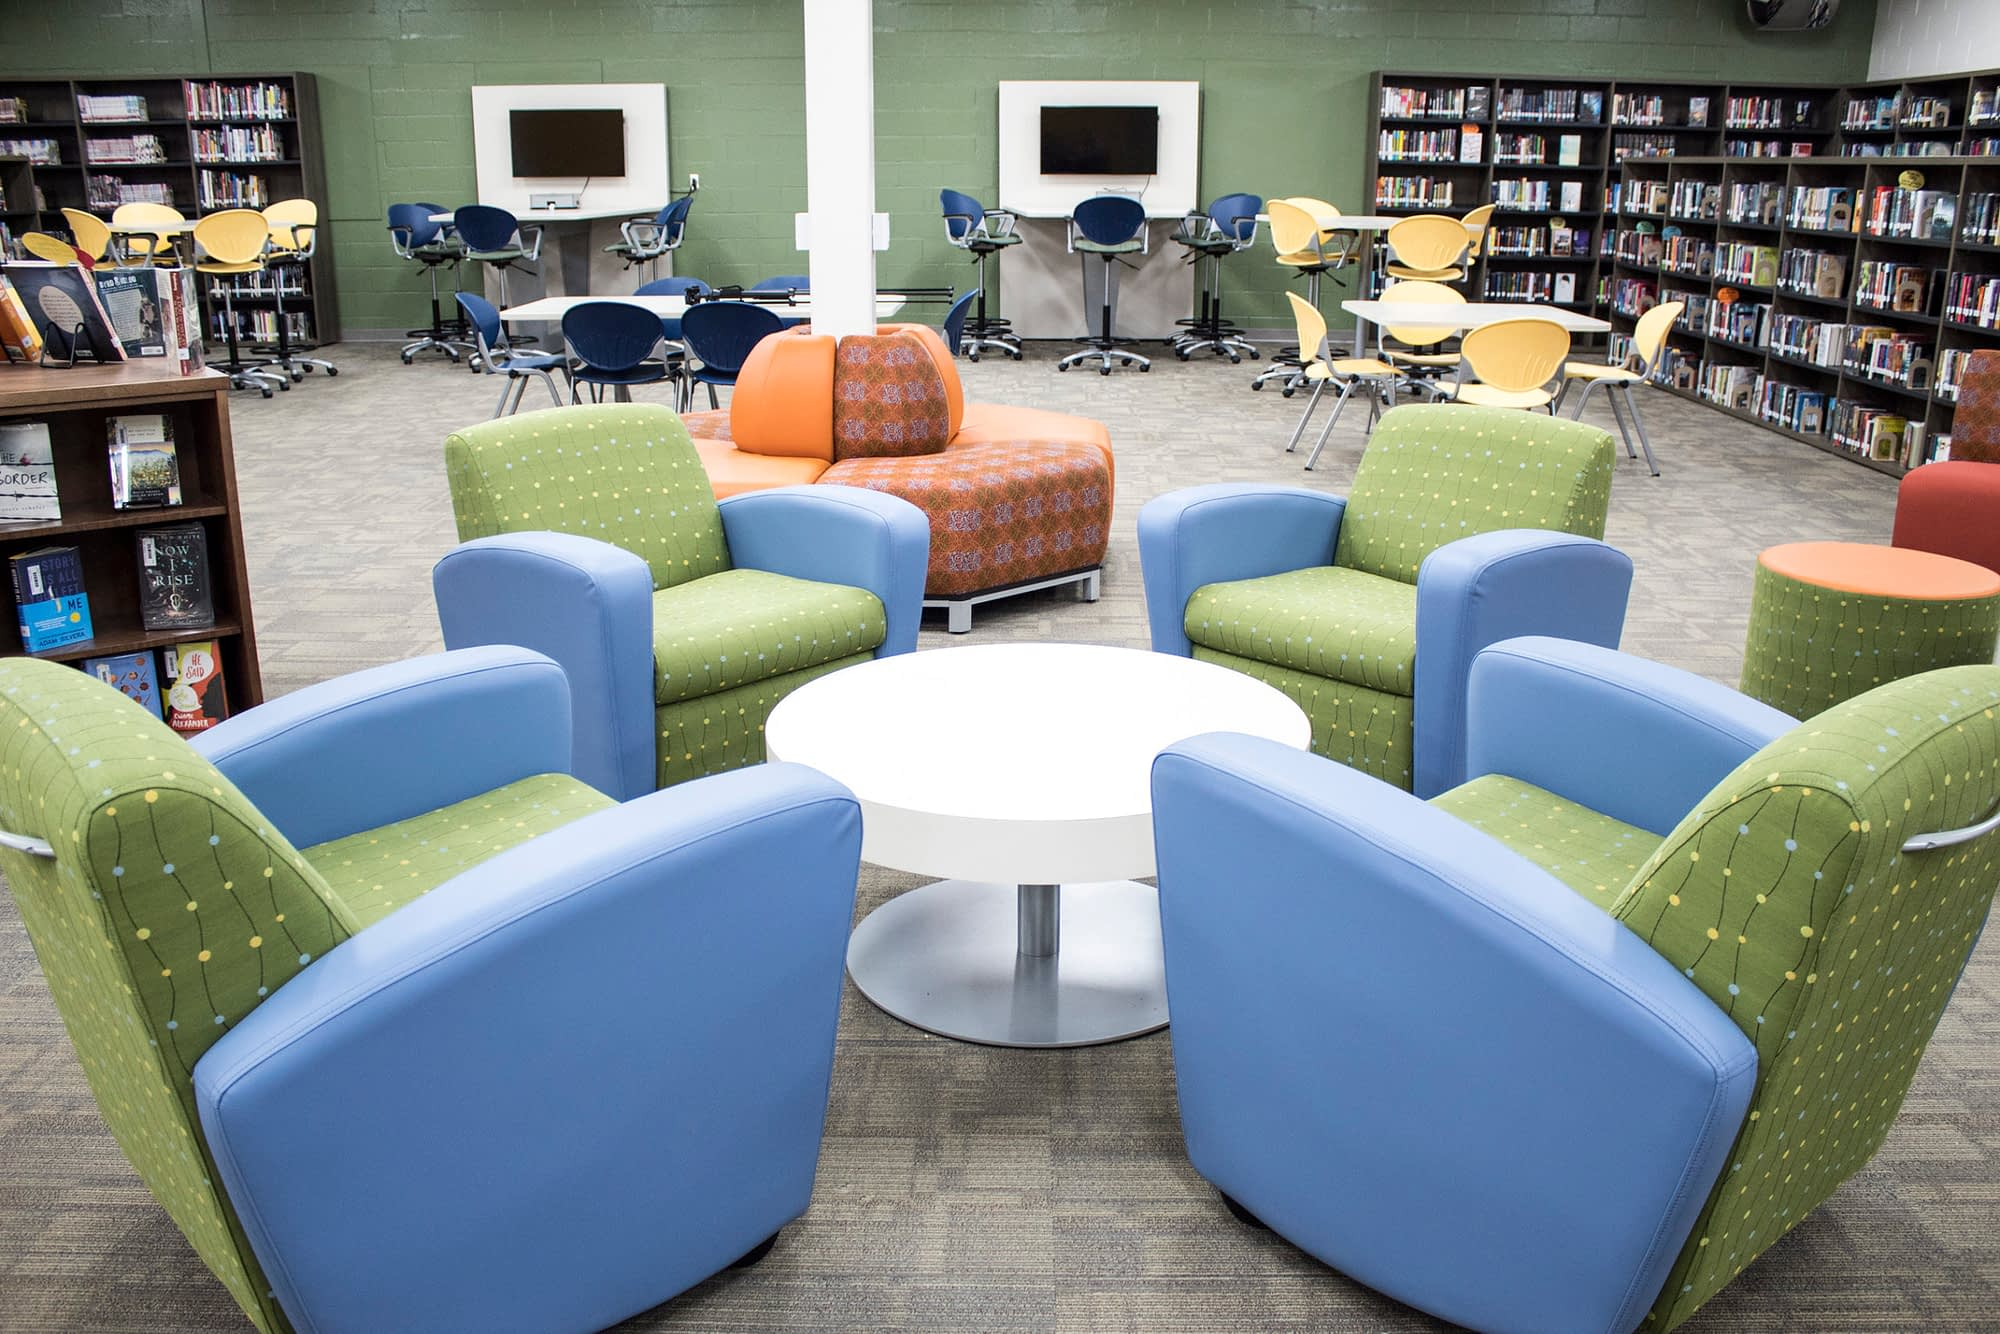 Library Reno Mobile Seat Lounges with Tble